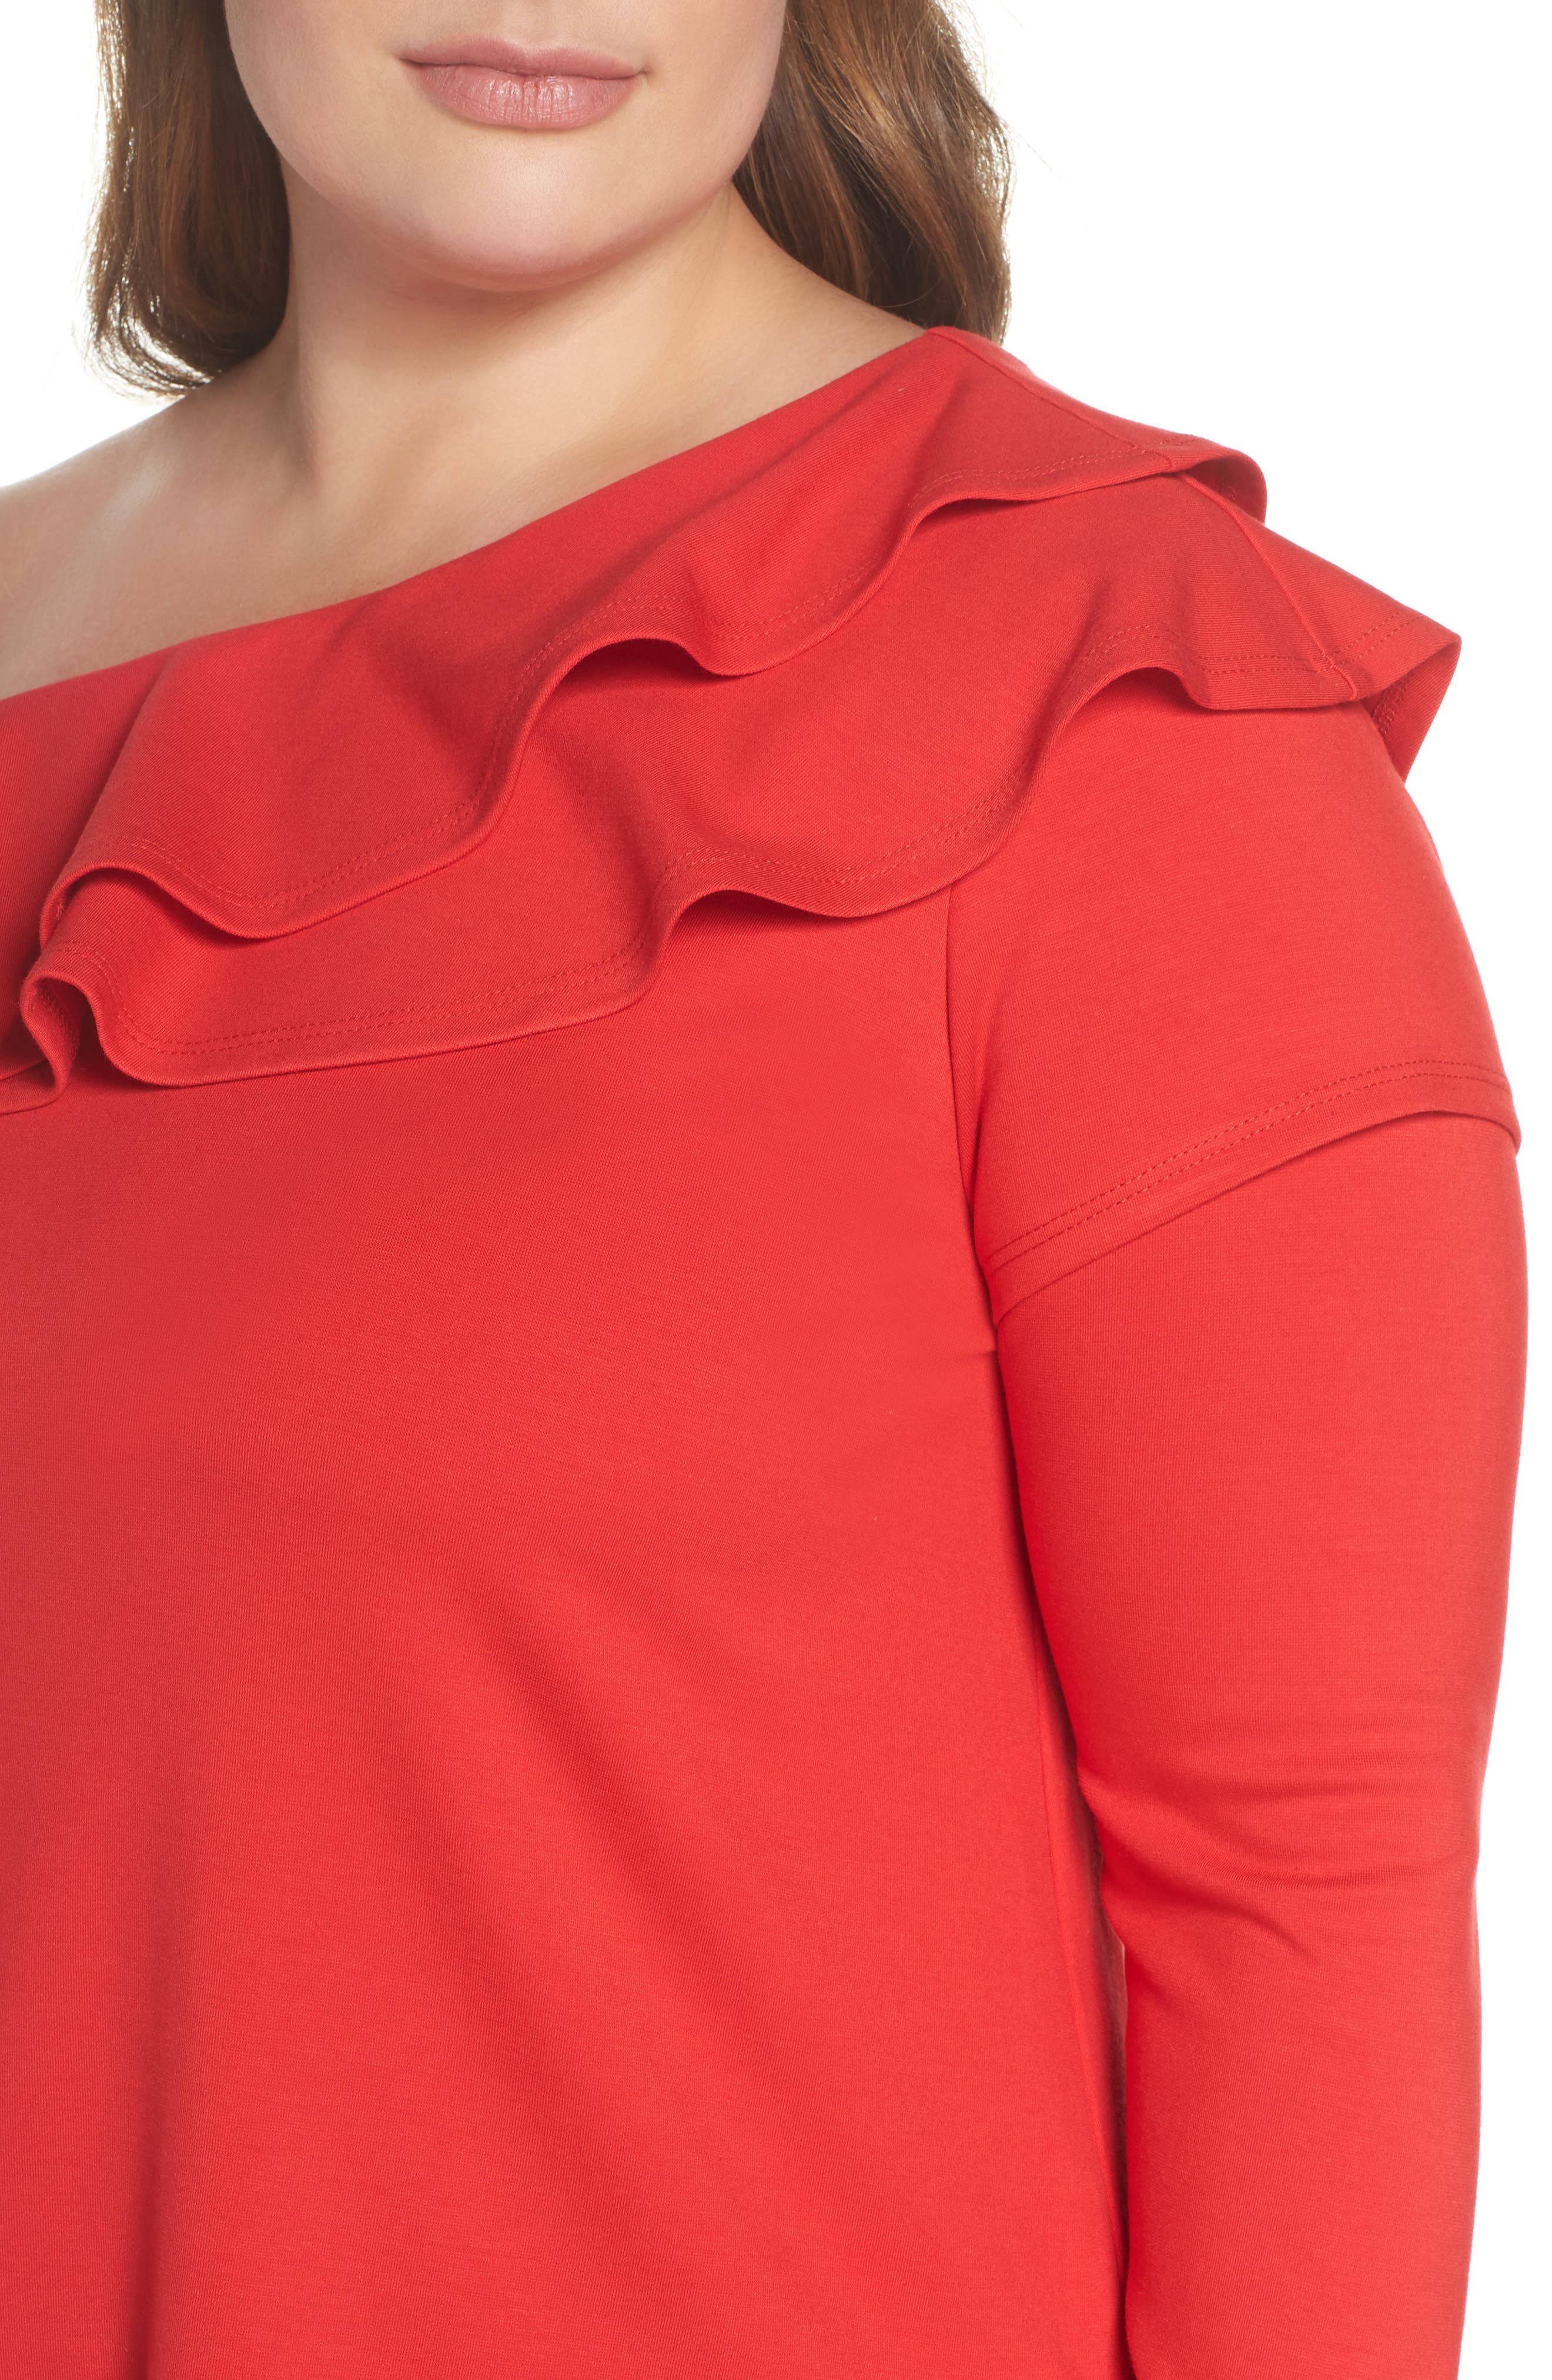 x Living in Yellow Elizabeth One-Shoulder Ruffle Top,                             Alternate thumbnail 17, color,